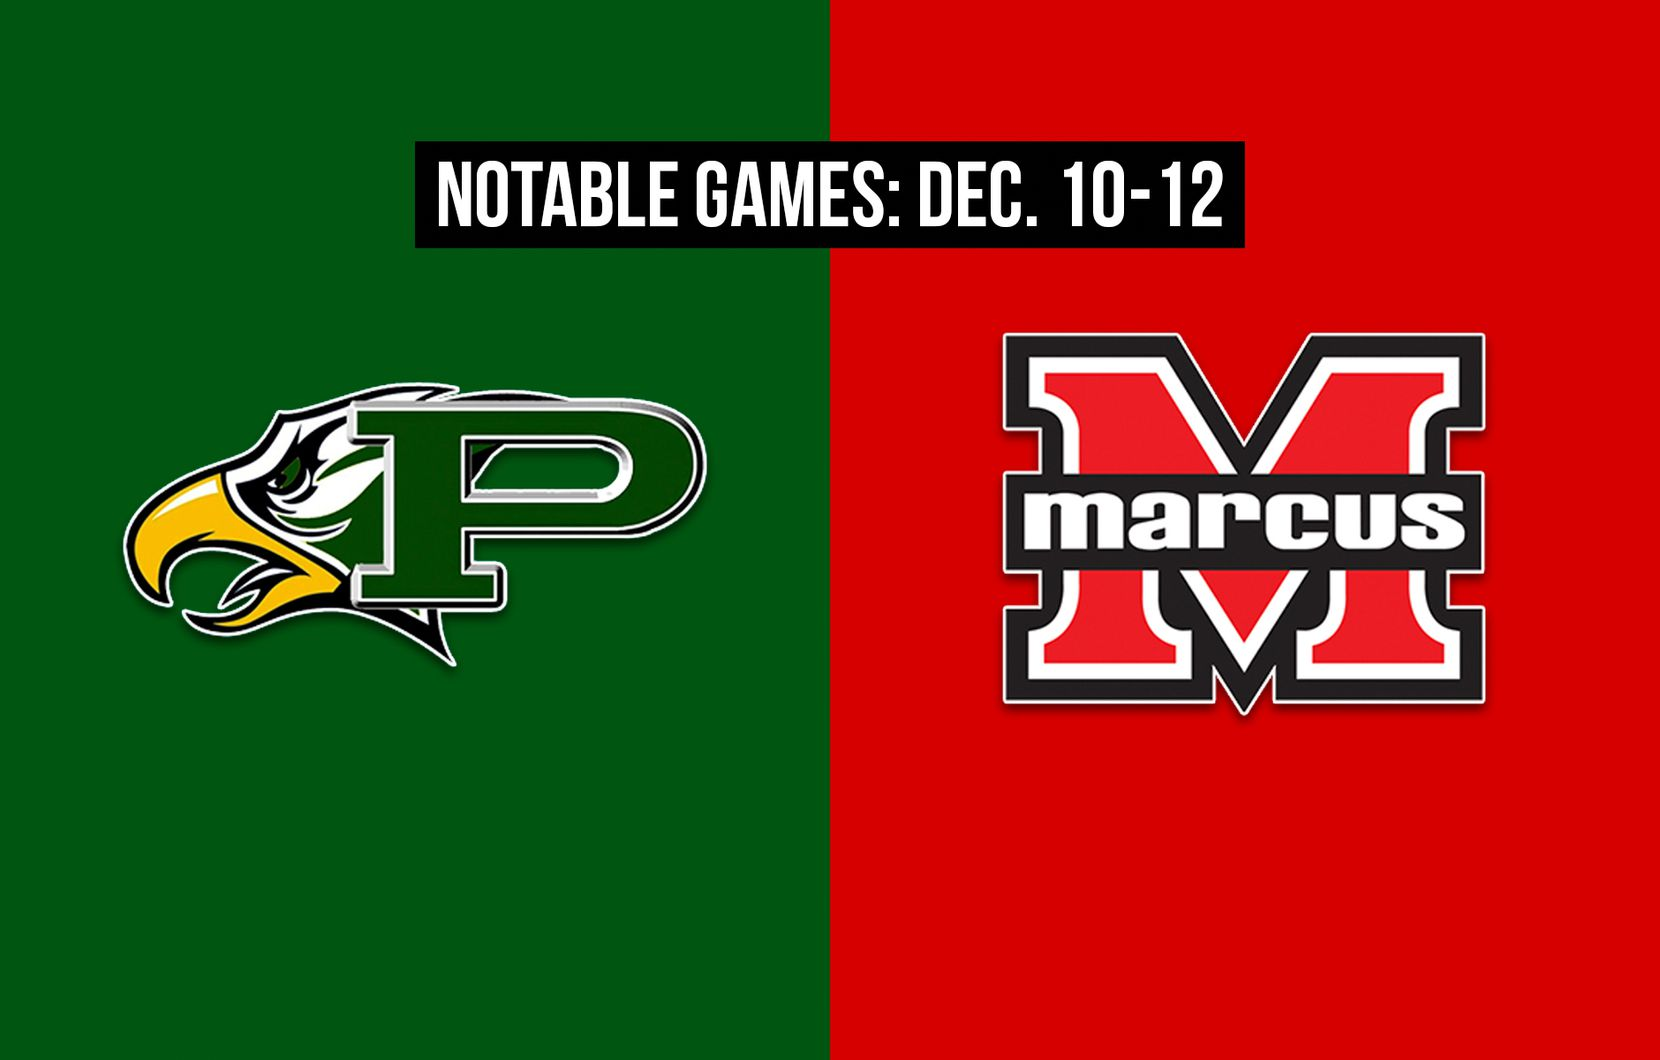 Notable games for the week of Dec. 10-12 of the 2020 season: Prosper vs. Flower Mound Marcus.